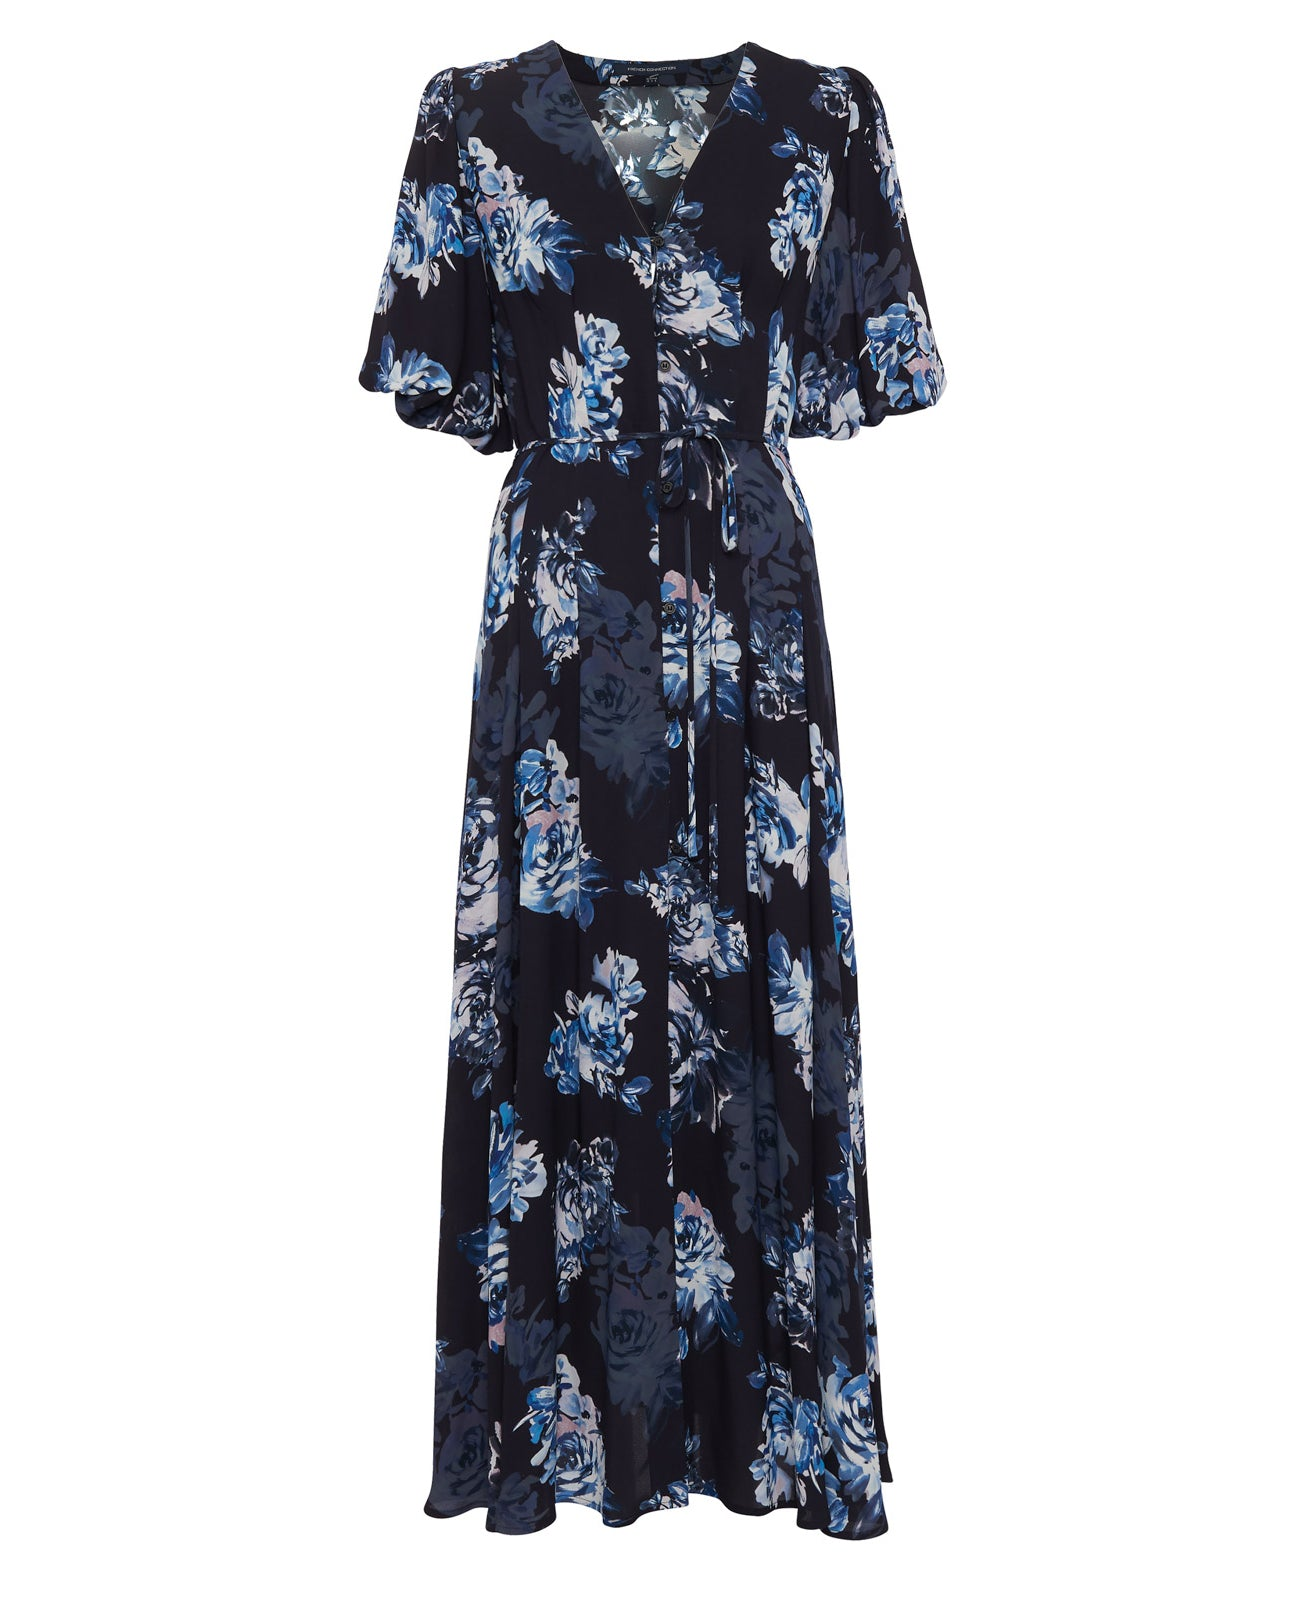 FRENCH CONNECTION CATERINA FLORAL MIDI DRESS